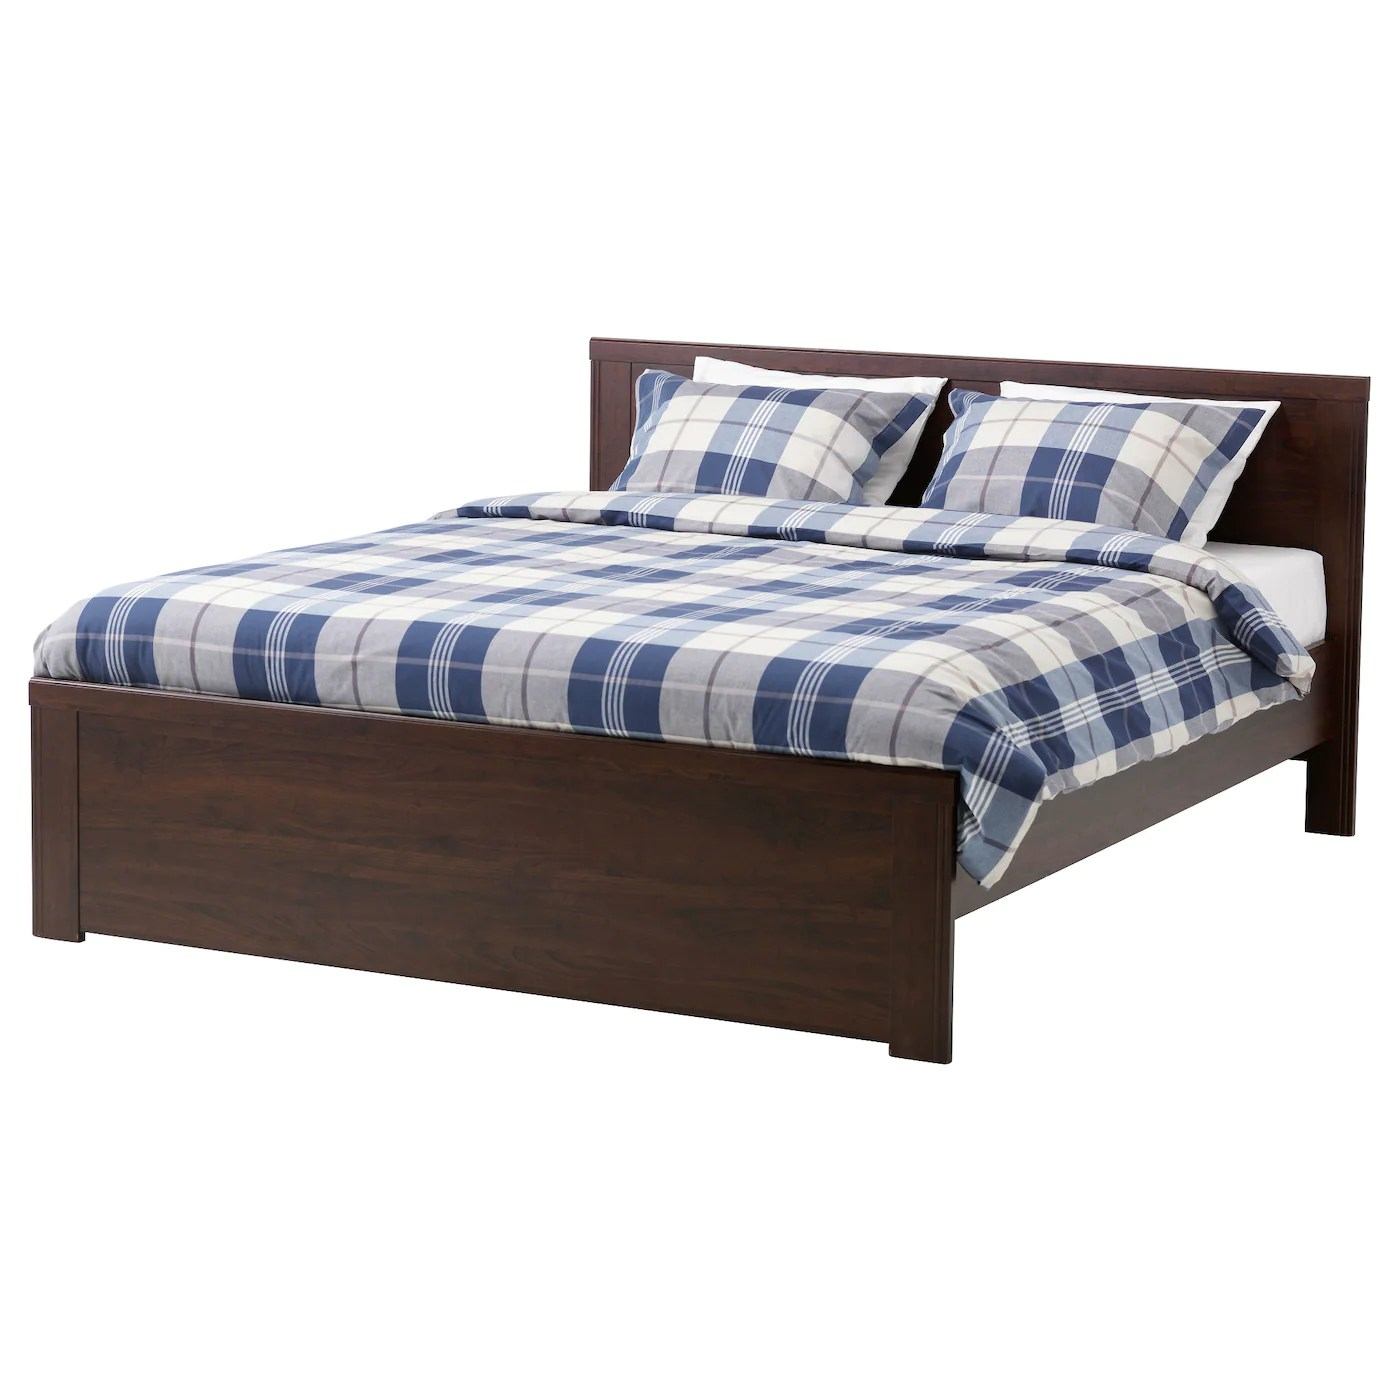 BRUSALI Bed frame Brown/lury Standard Double